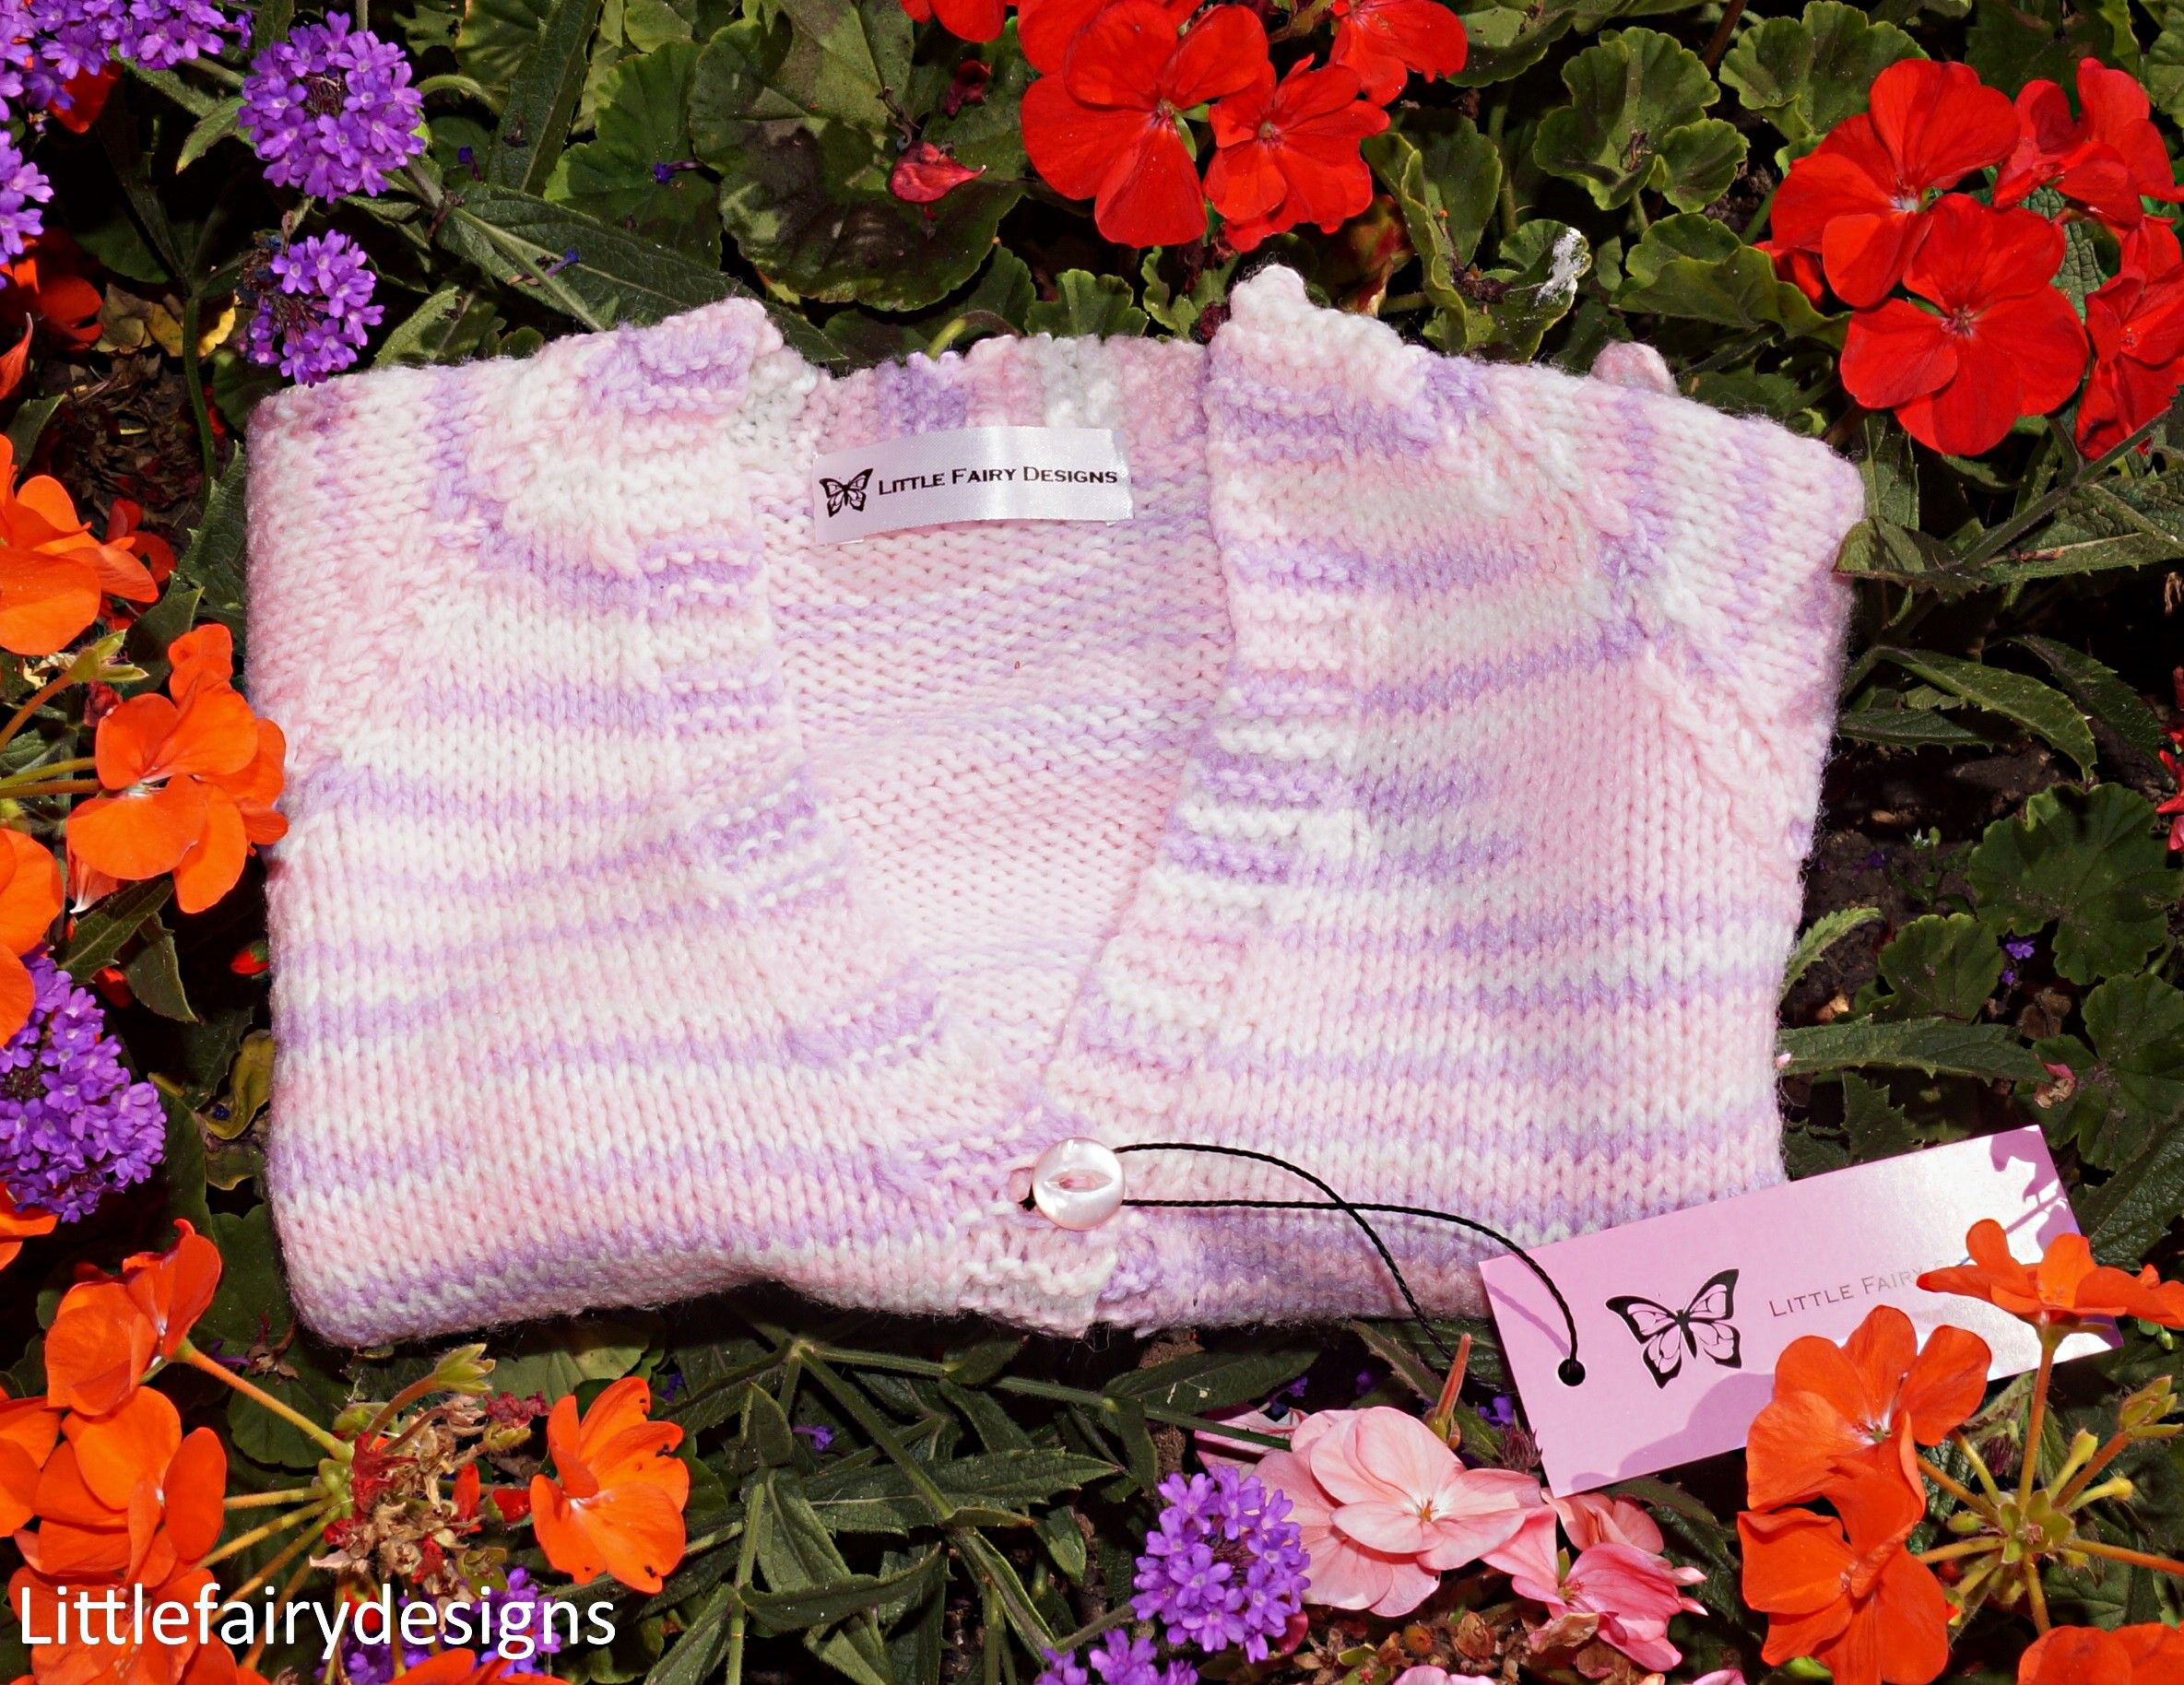 Gorgeous Handmade Knitted Baby Multi Cardigan 2-4y